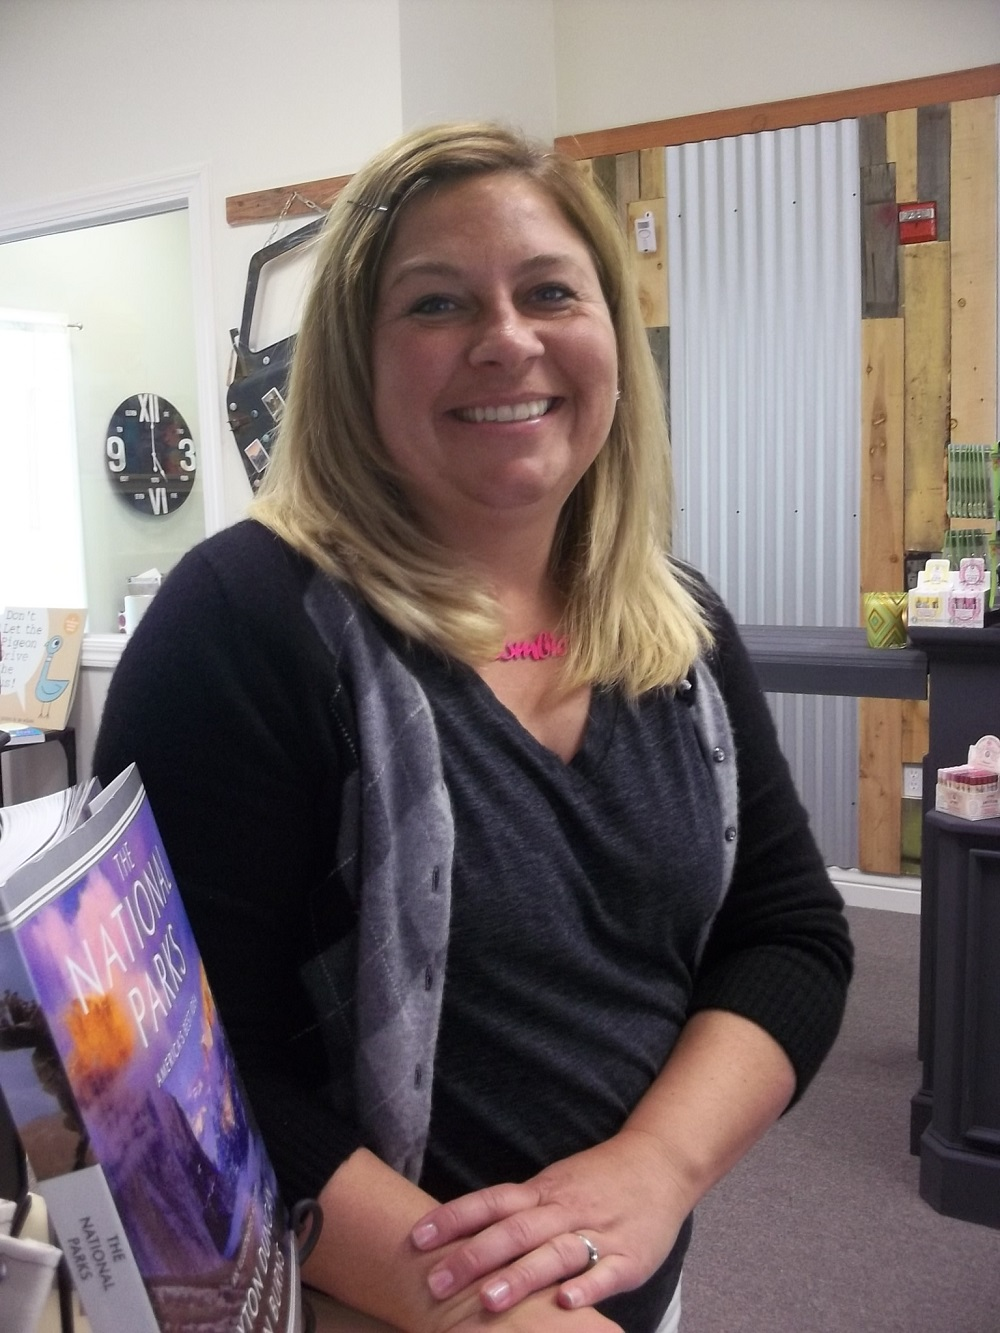 Branches Books and Gifts - Owner Anne Driscoll - Photo by Kellie Flanagan